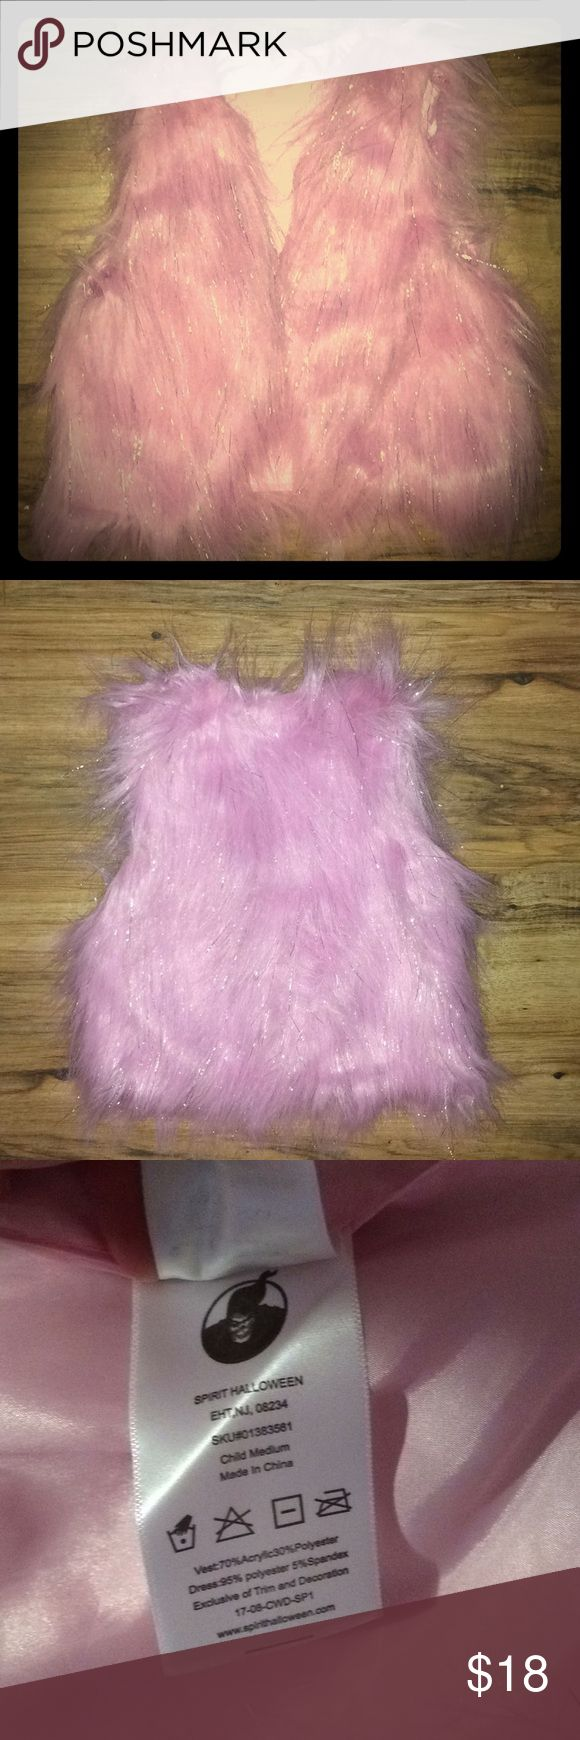 NWOT Pink Faux Fur Vest Super cute bubble gum pink faux fur vest with silver tinsel throughout.  Brand new and never worn. Bought for Halloween but didn't end up using it. Child's medium. Jojo Siwa Shirts & Tops